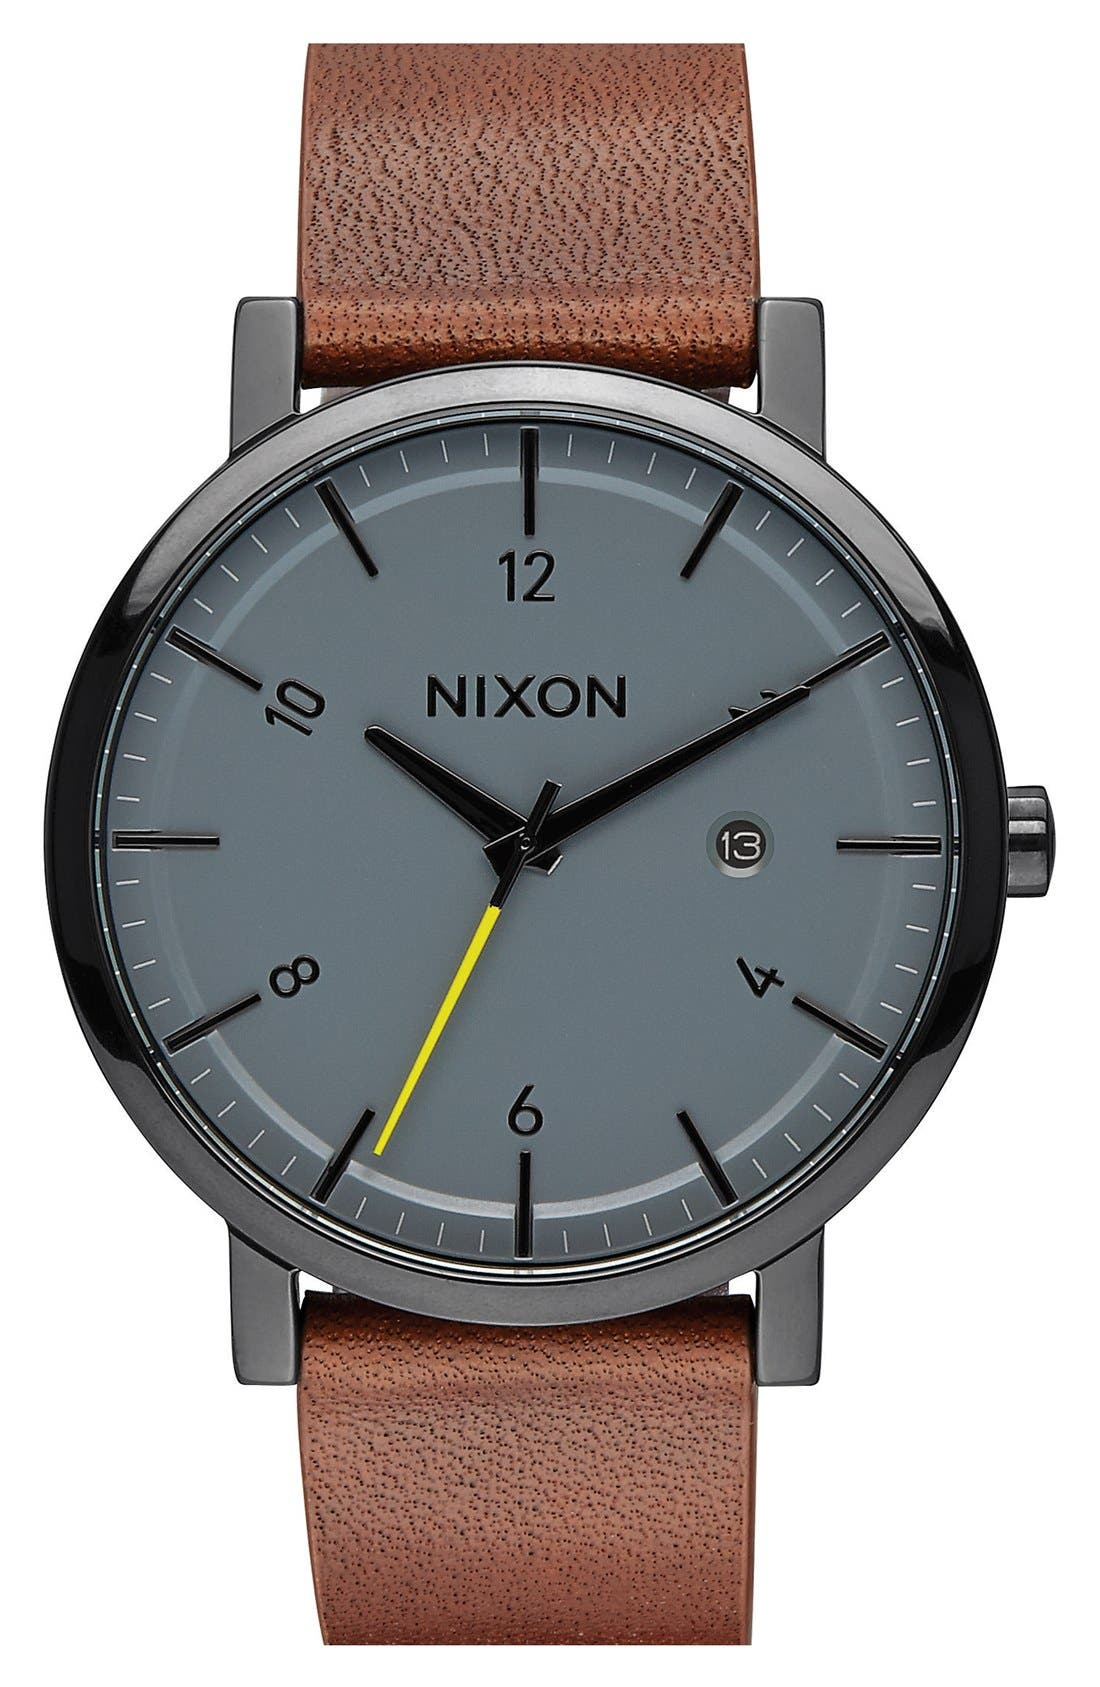 NIXON 'Rollo' Leather Strap Watch, 42Mm in Brown/ Charcoal